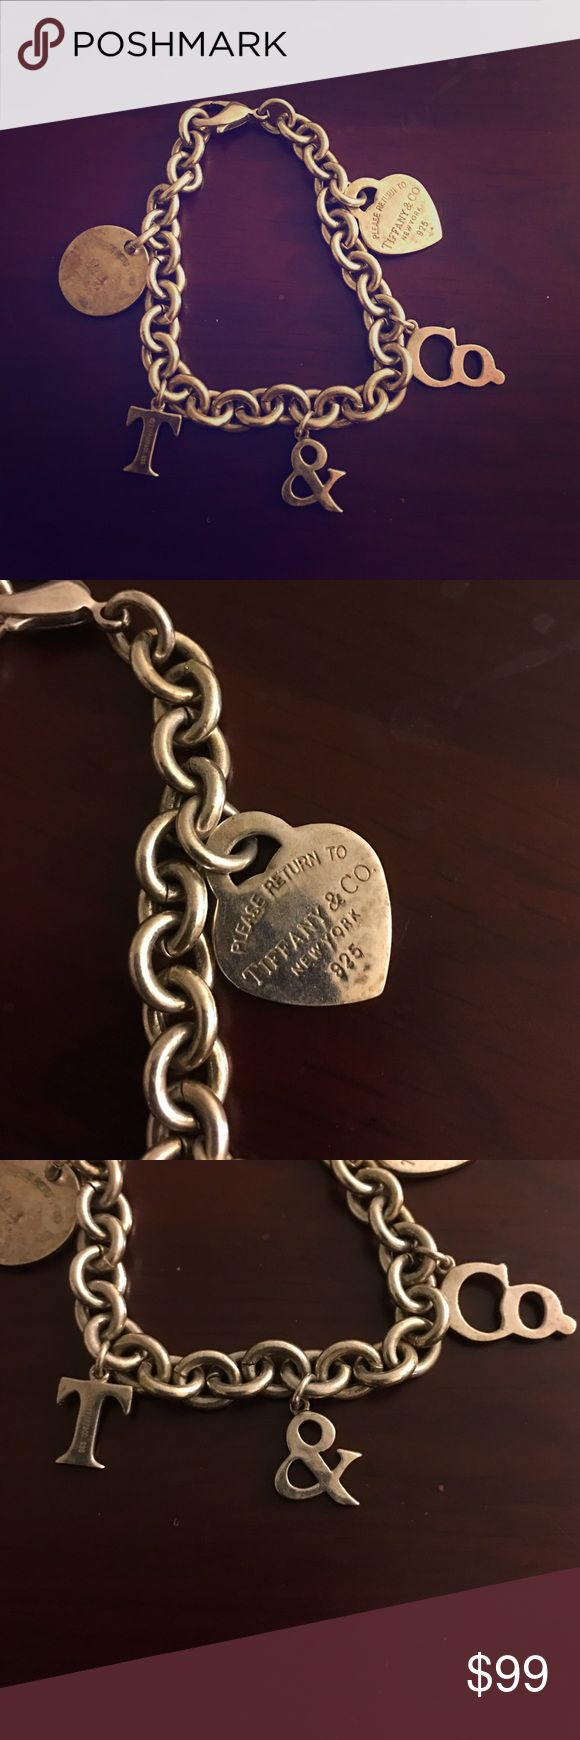 Rare Vintage Tiffany & Co. Charm Bracelet 925 Sterling.  Gorgeous Quality piece.  Was told it's not authentic T&Co.  but still a great piece to have regardless  Tiffany & Co. Jewelry Bracelets